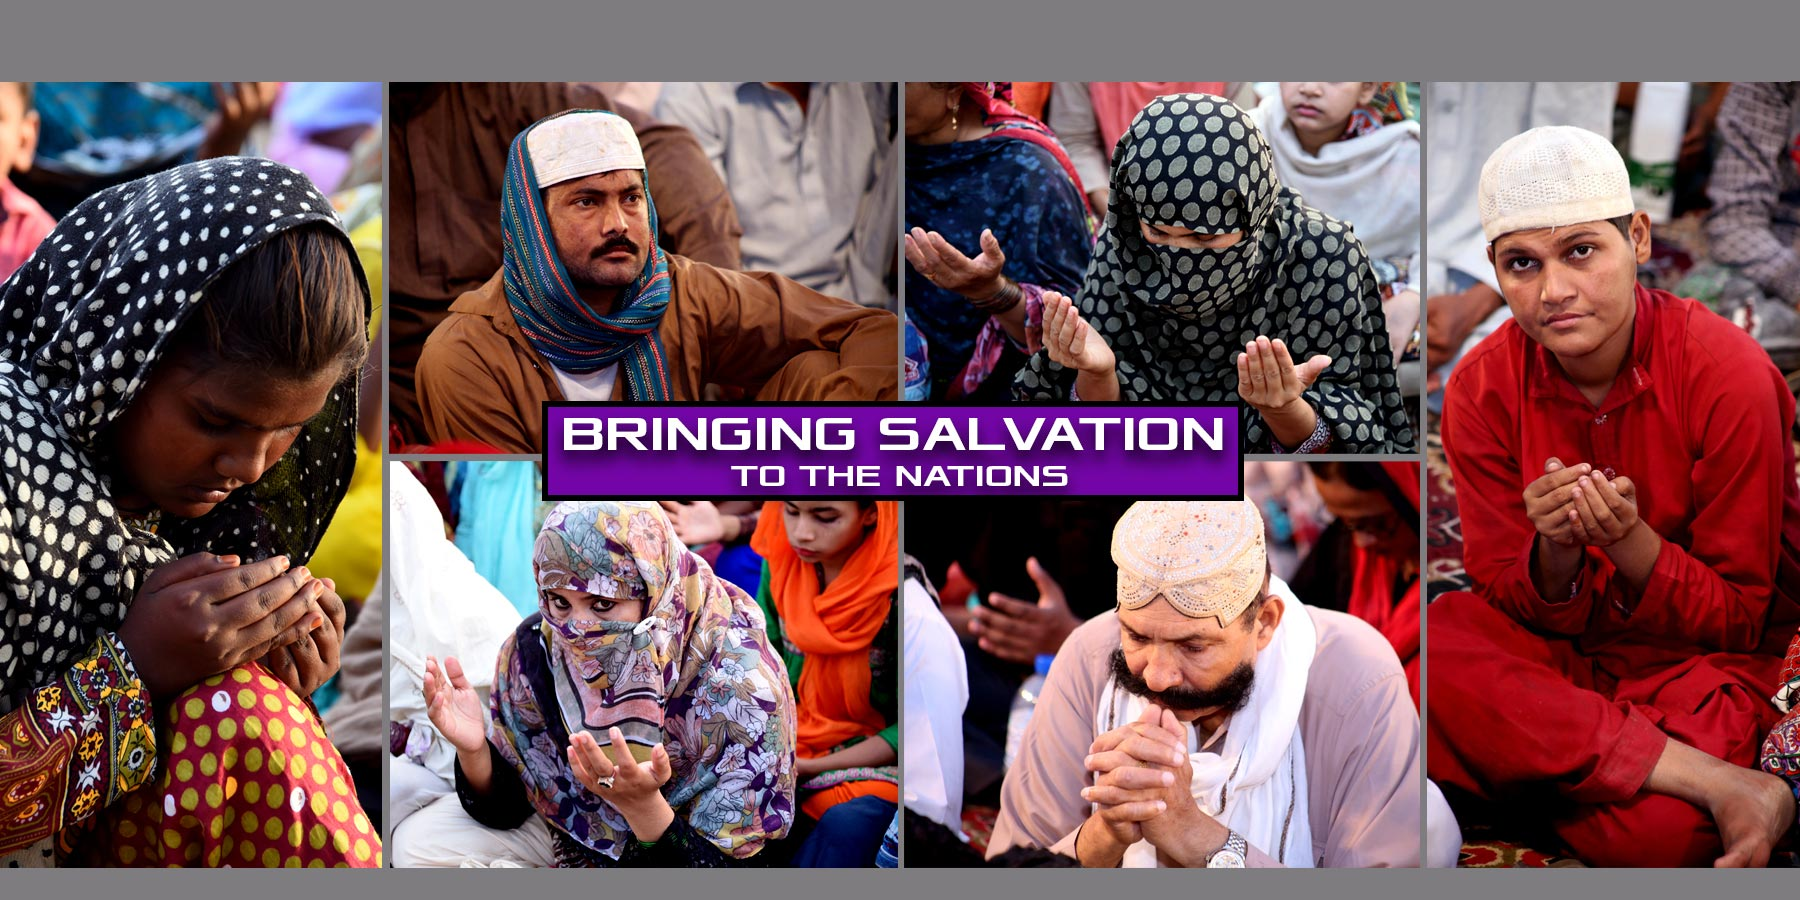 BRINGING SALVATION TO THE NATION